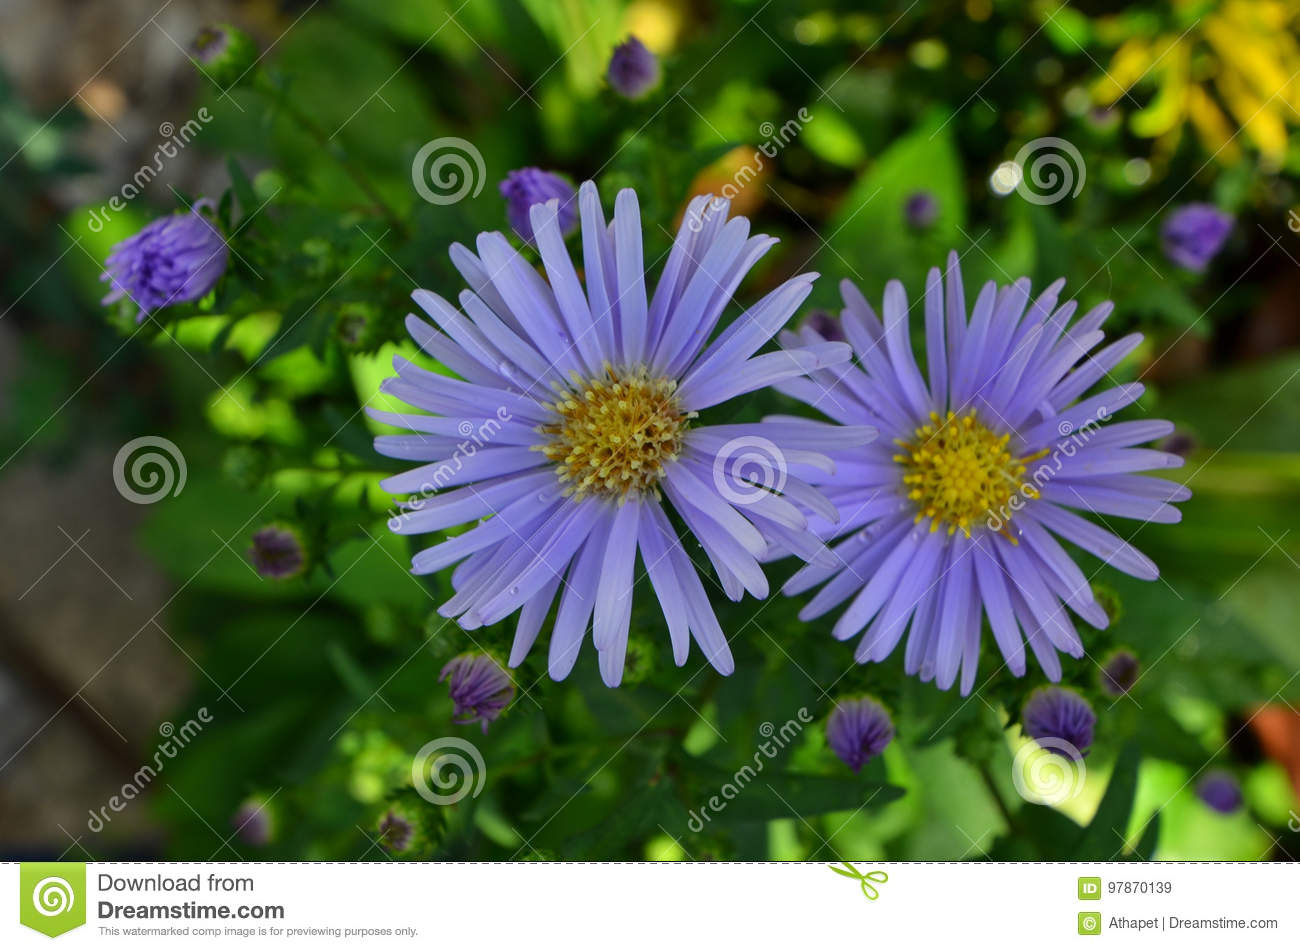 Beautiful couple of violet daisy flowers